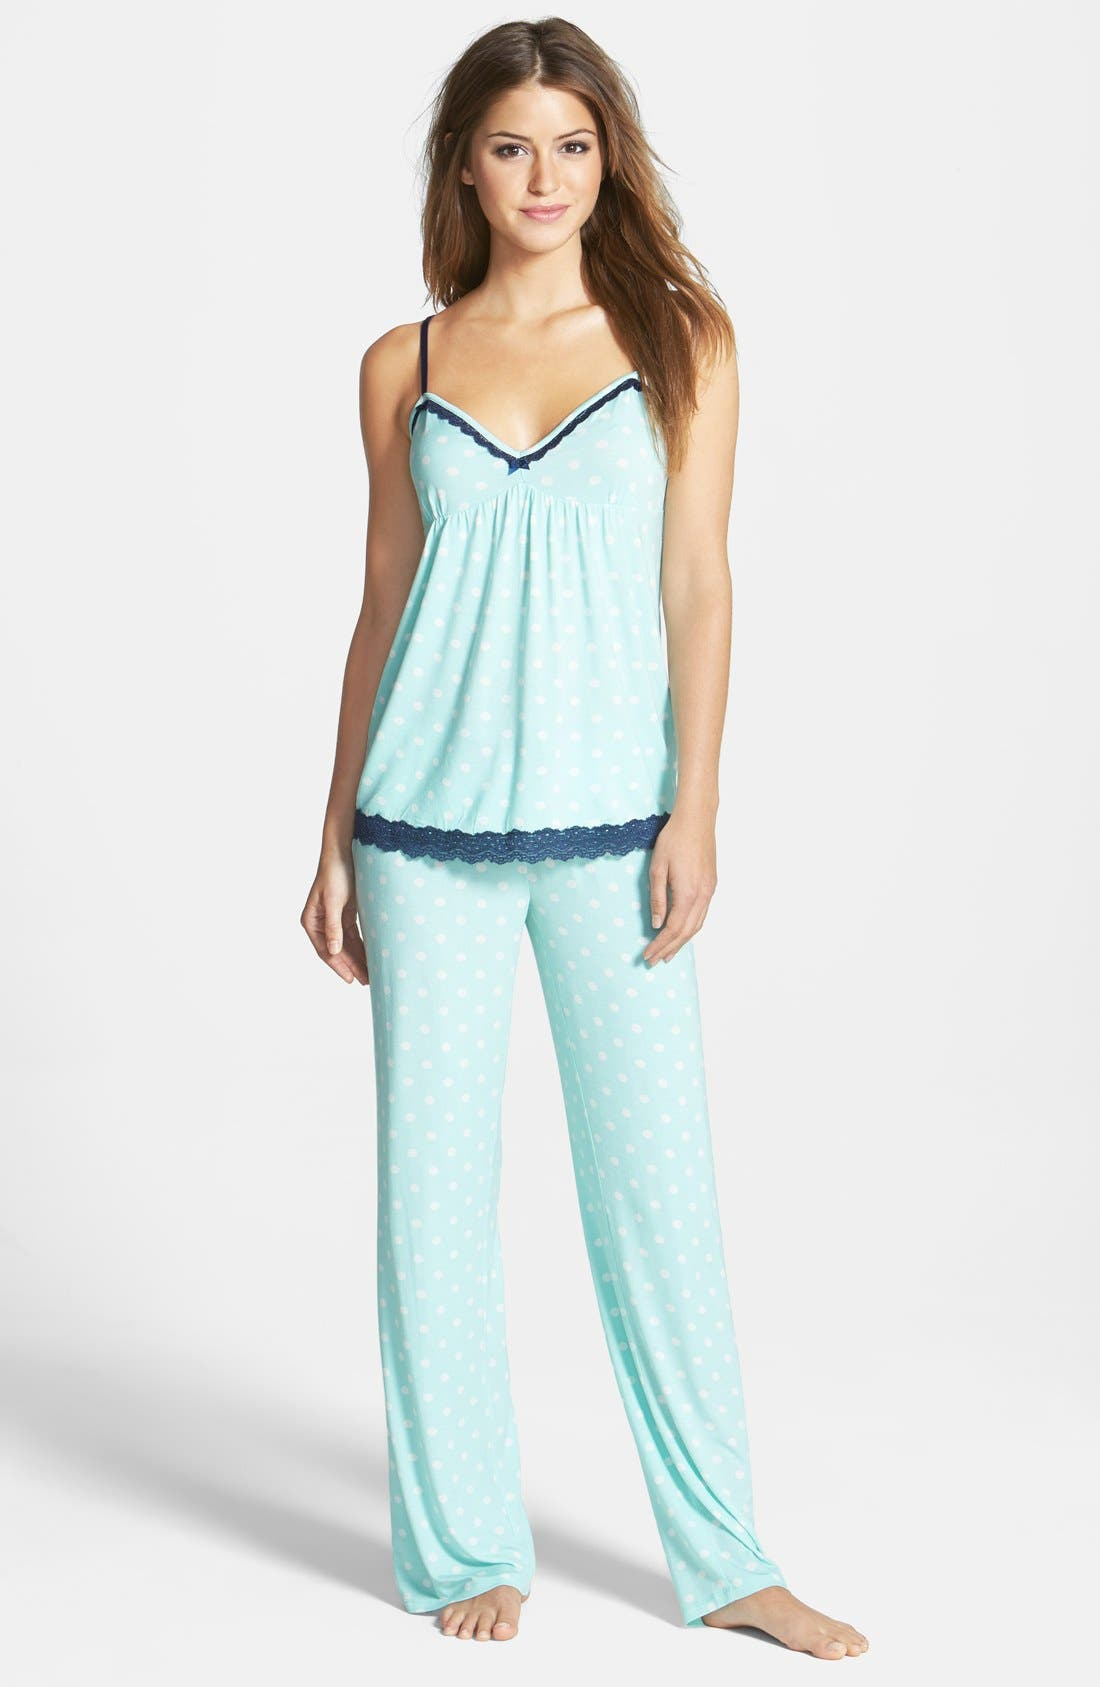 Main Image - PJ Salvage 'Modal Essentials' Lace Trim Camisole Pajamas (Nordstrom Exclusive)